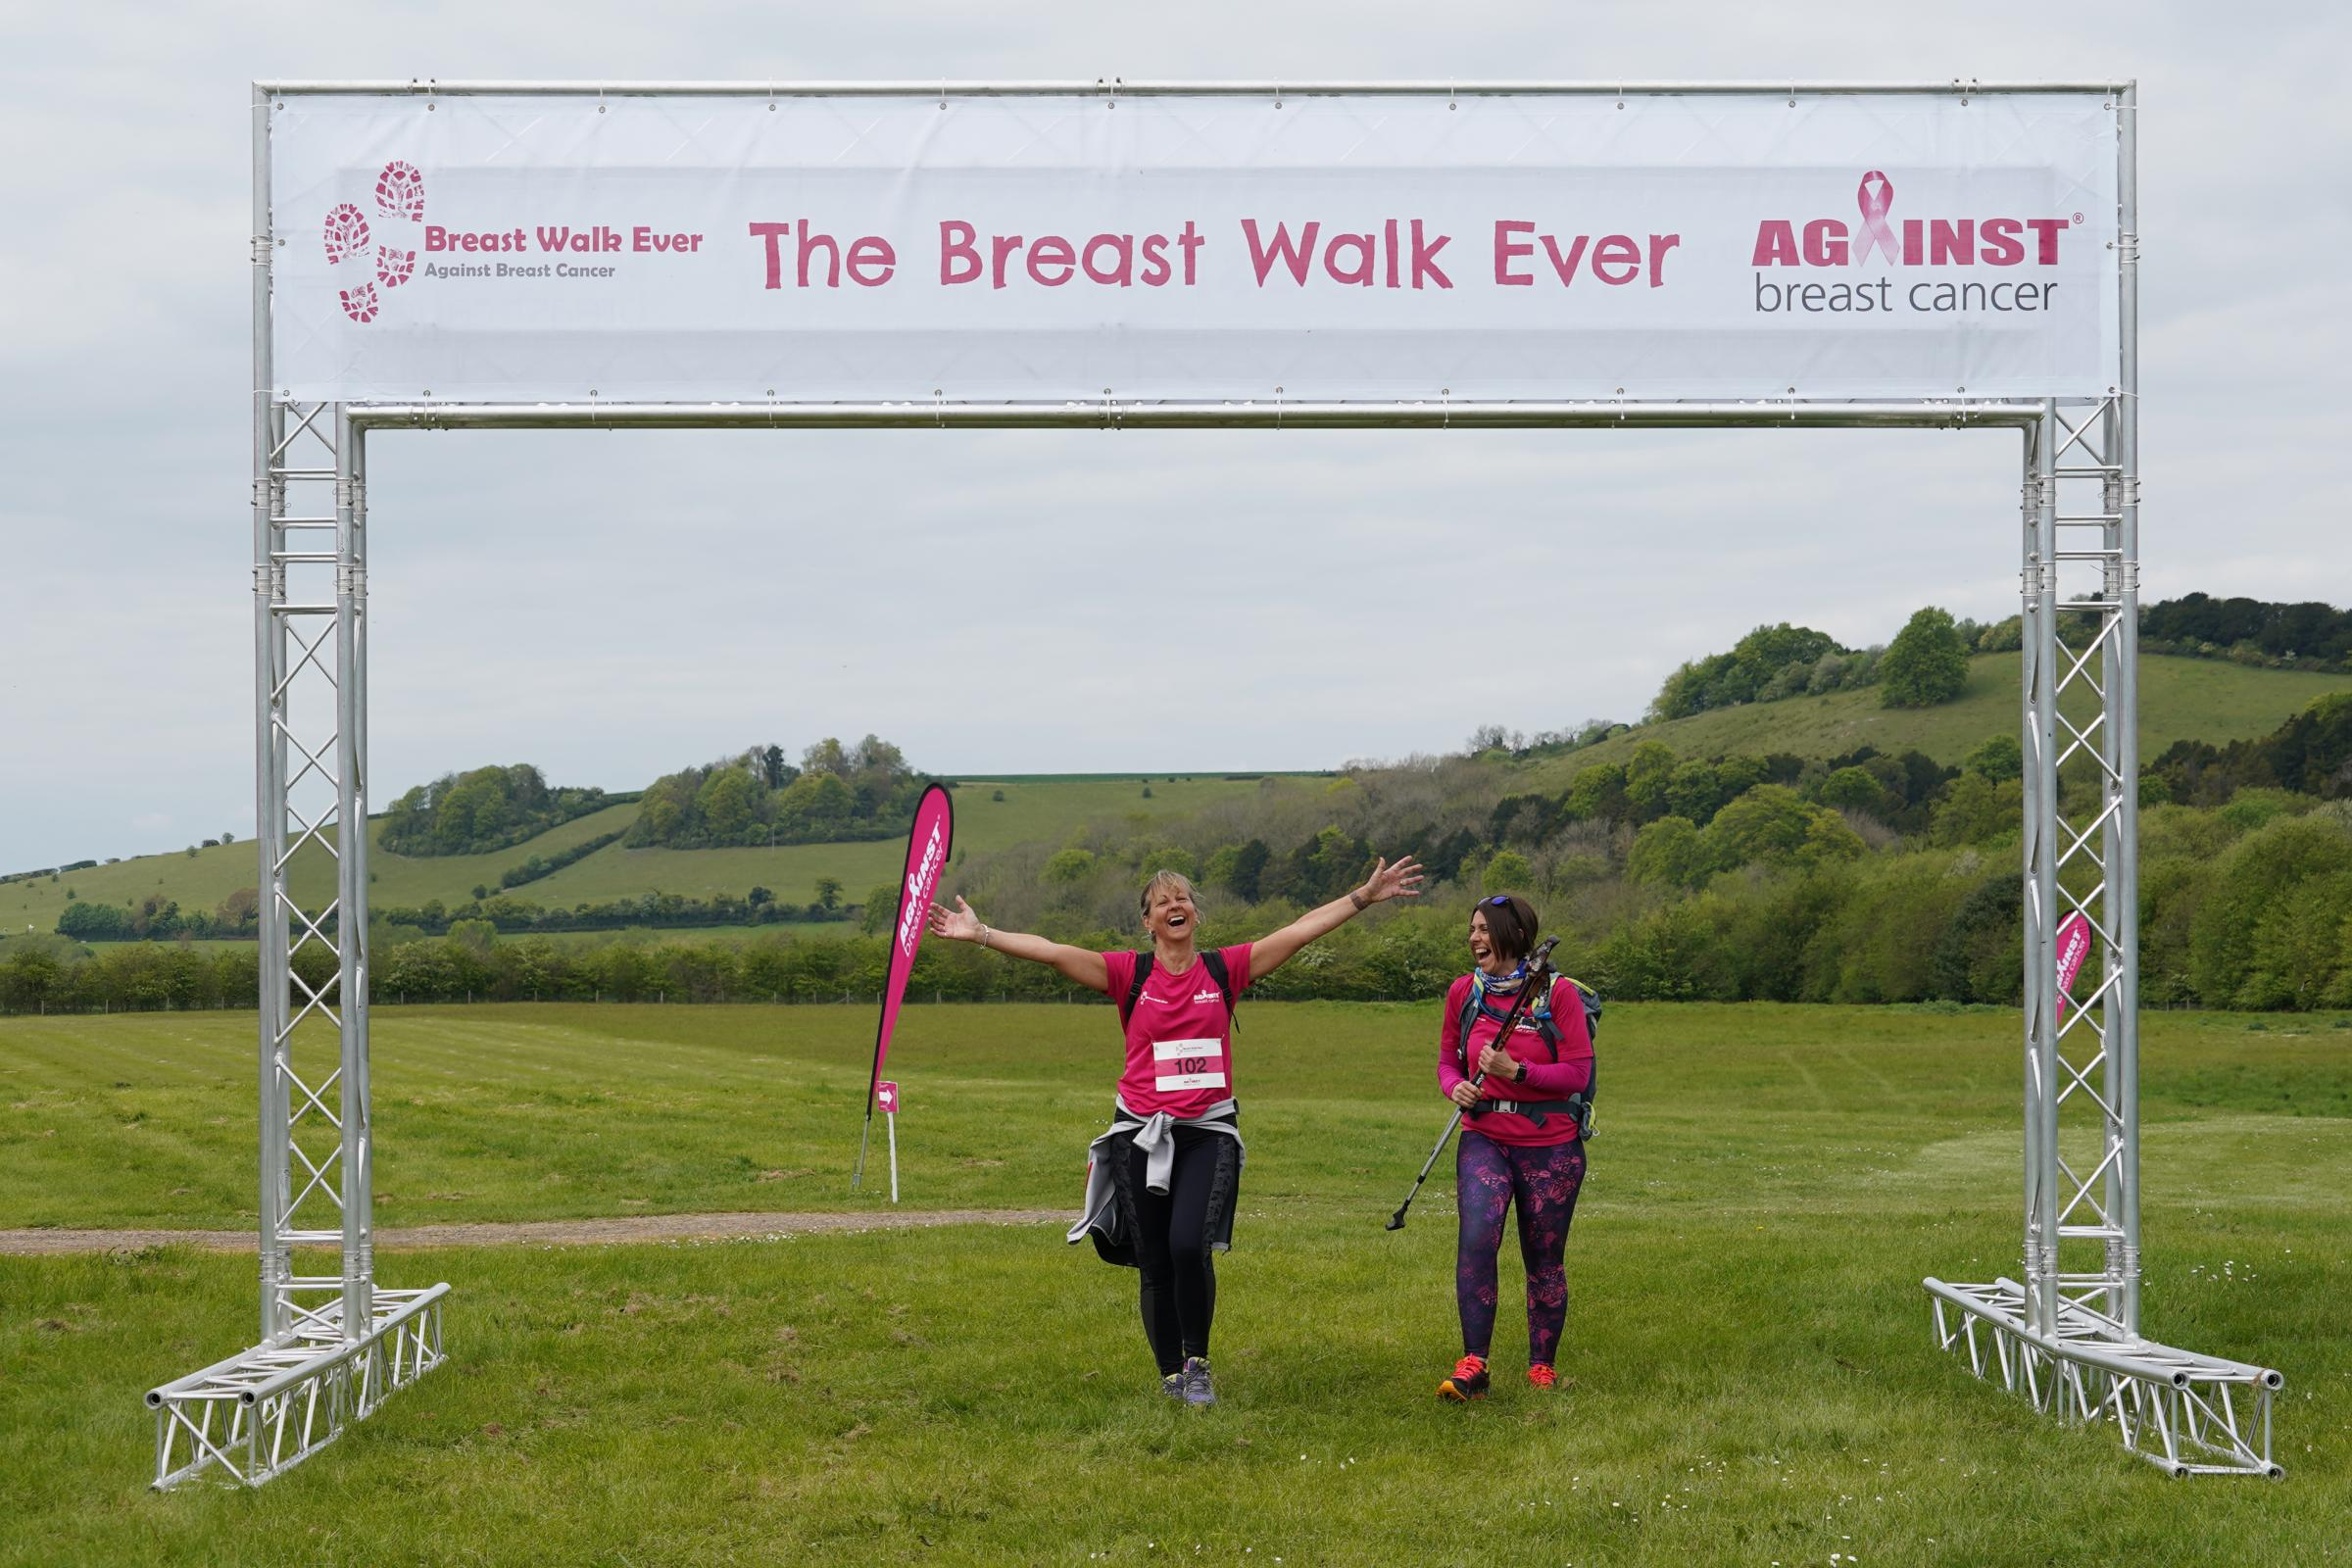 Entries open for Abingdon charity's Breast Walk Ever